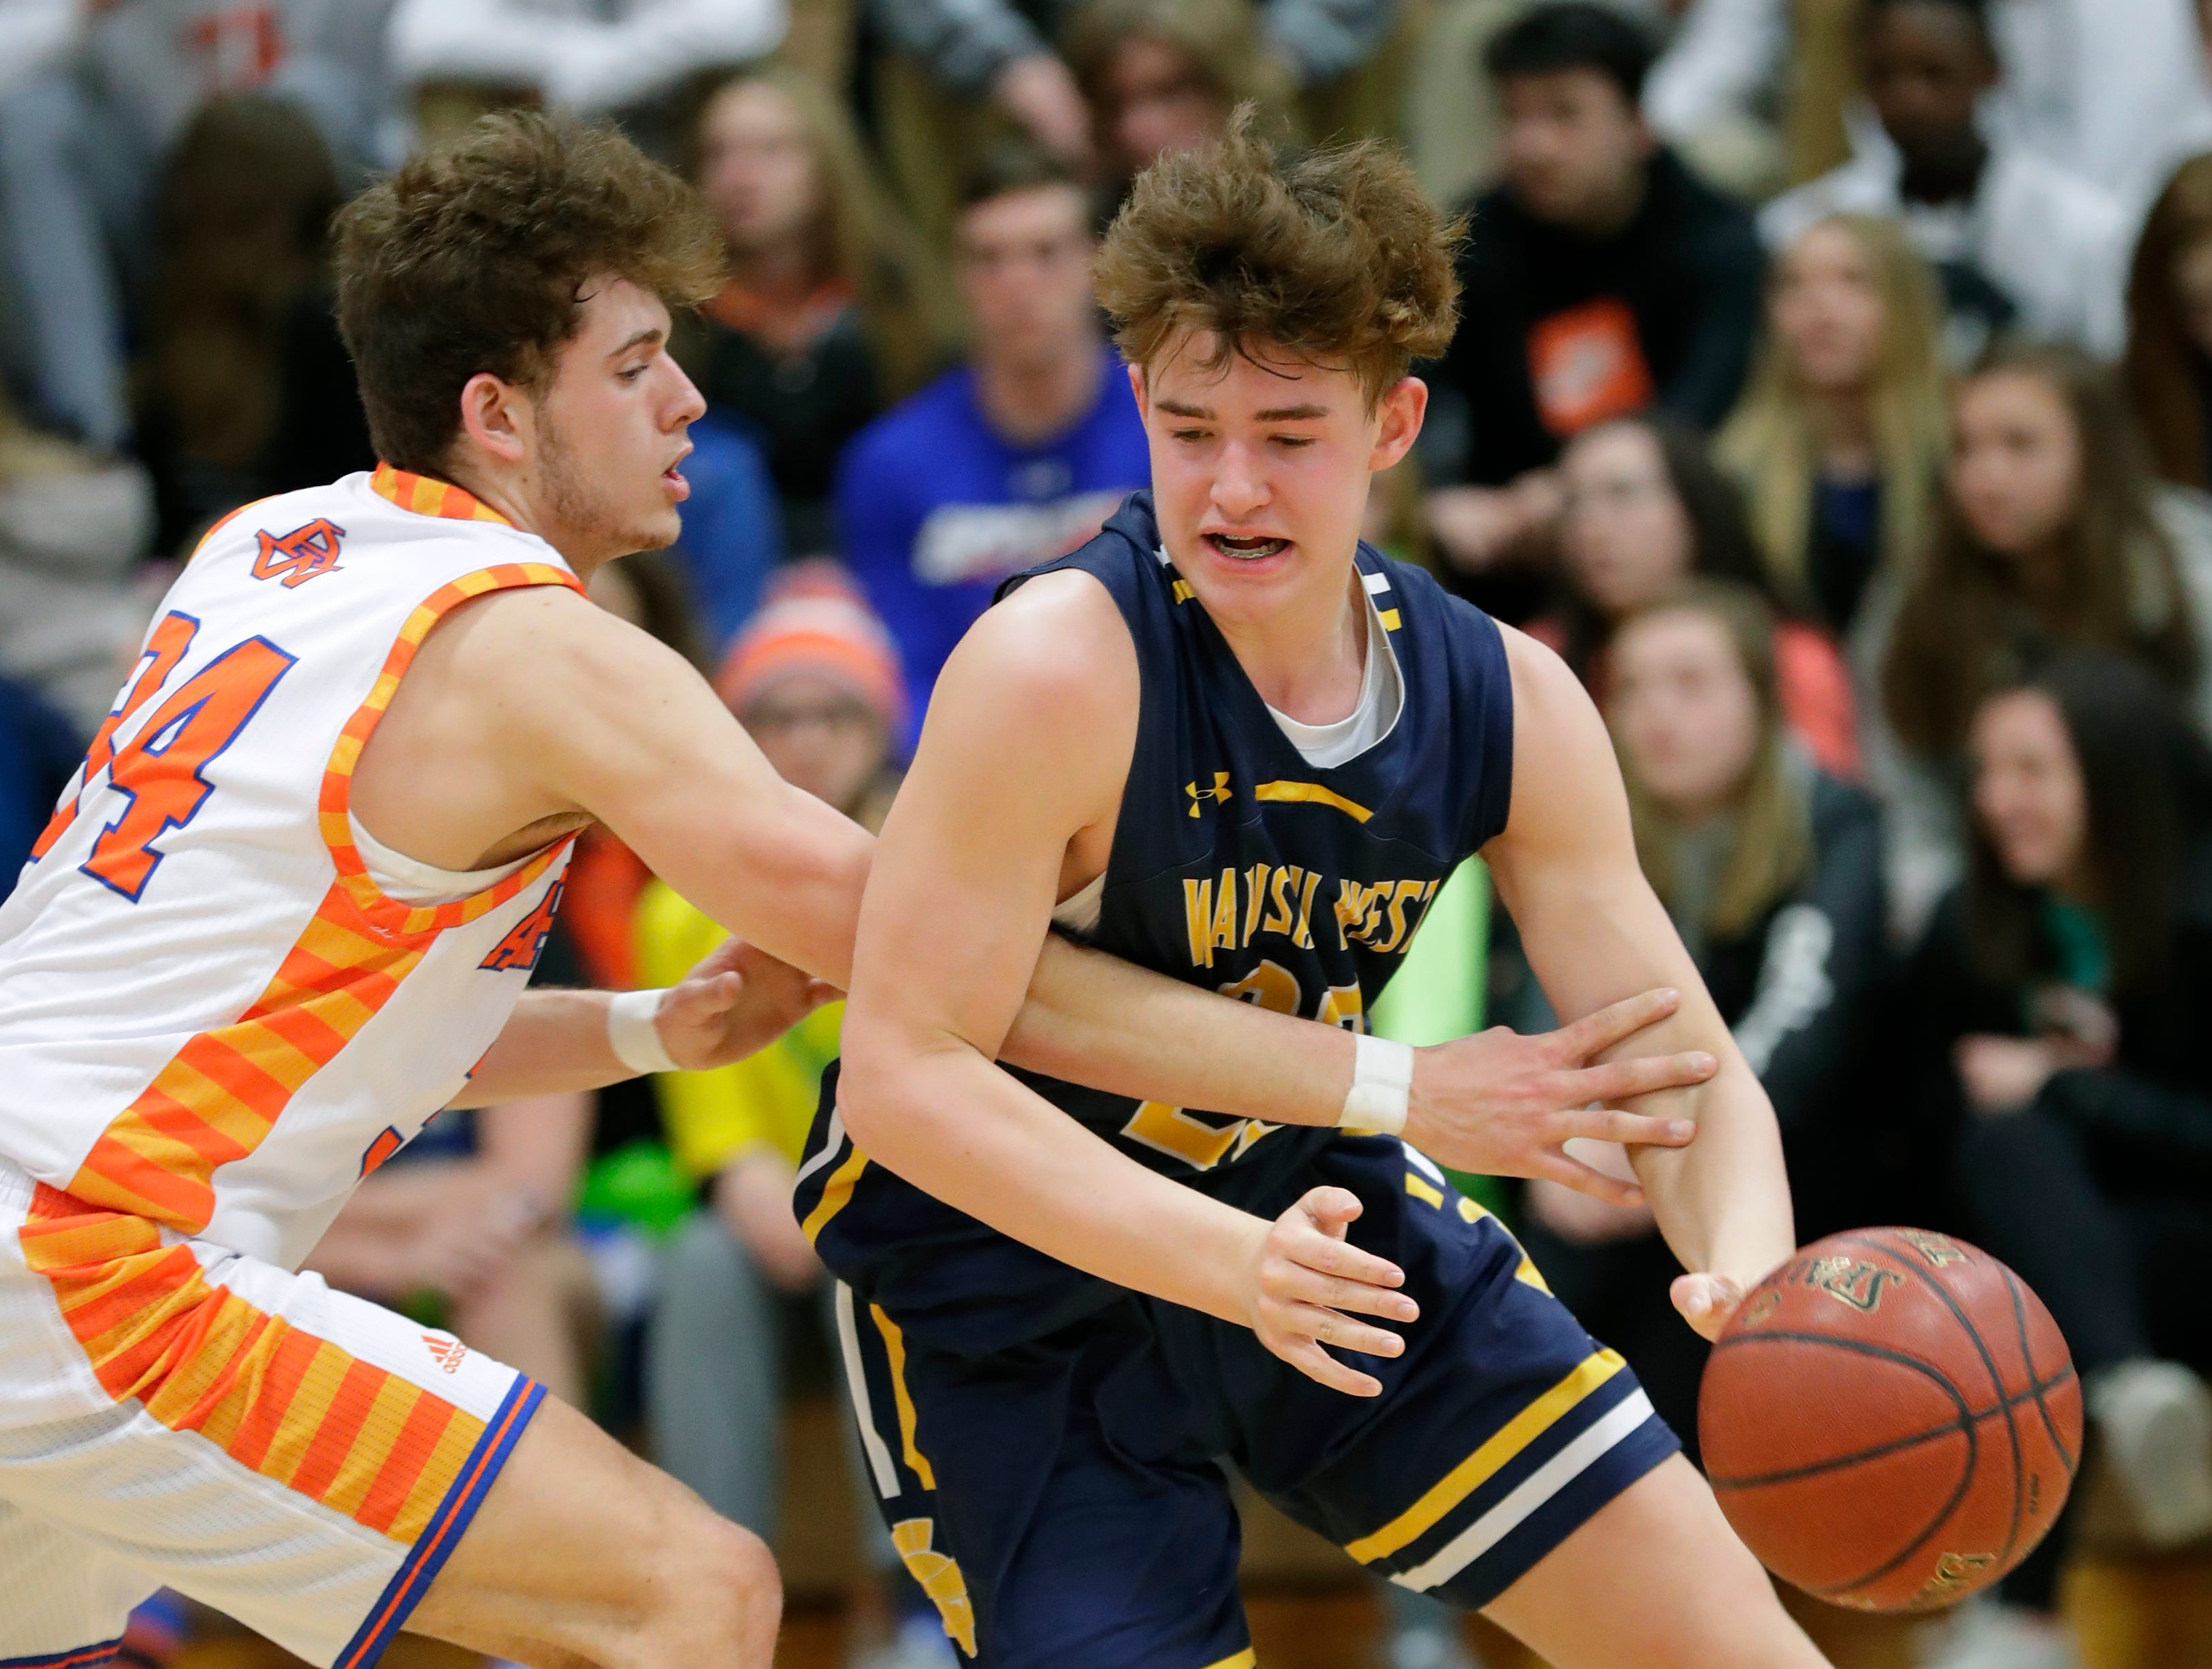 Appleton West  High School's Spencer Mellberg (34) defends against Wausau West High School's Logan White (23) during their boys basketball game Friday, December 28, 2018, in Appleton, Wis. Dan Powers/USA TODAY NETWORK-Wisconsin